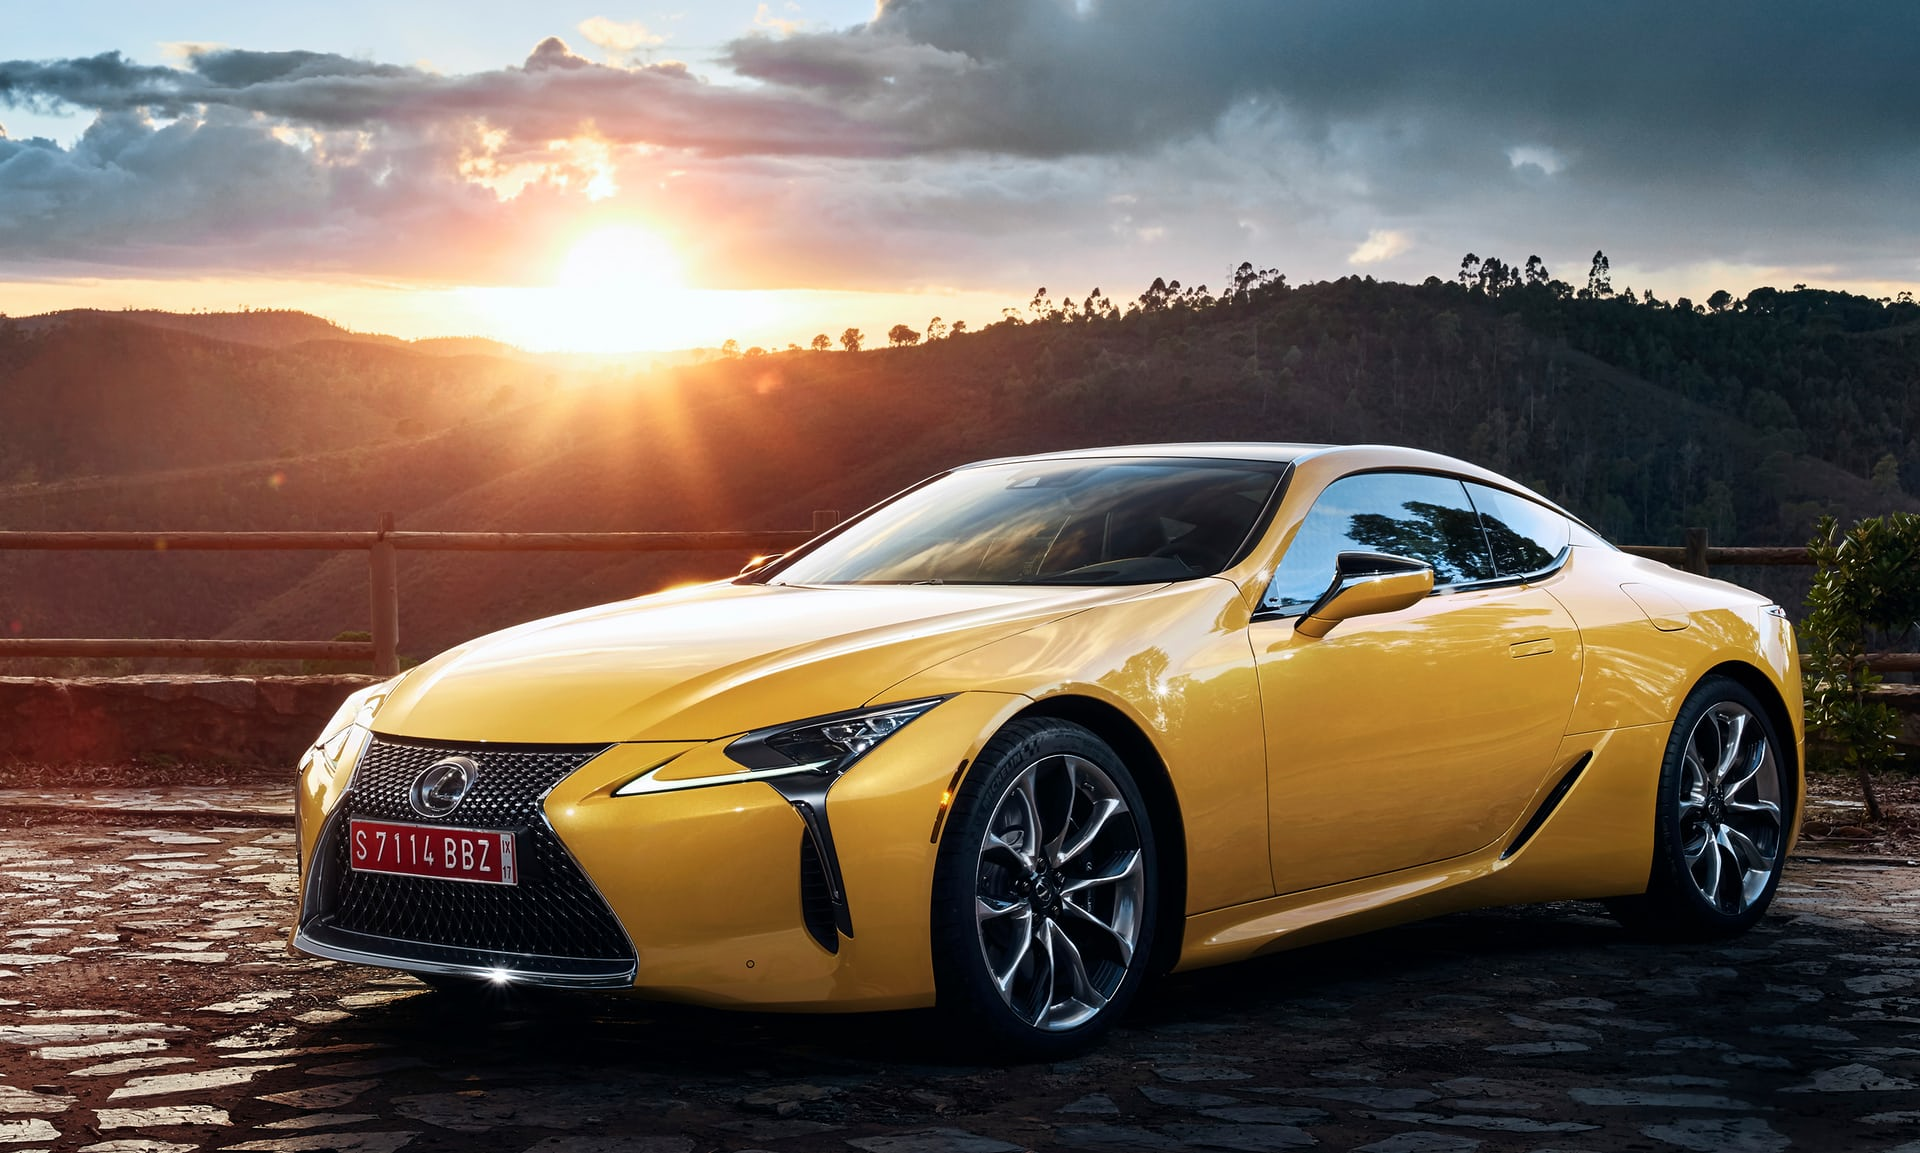 2019-lexus-lc-limited-edition-ra-mat-paris-12.jpg